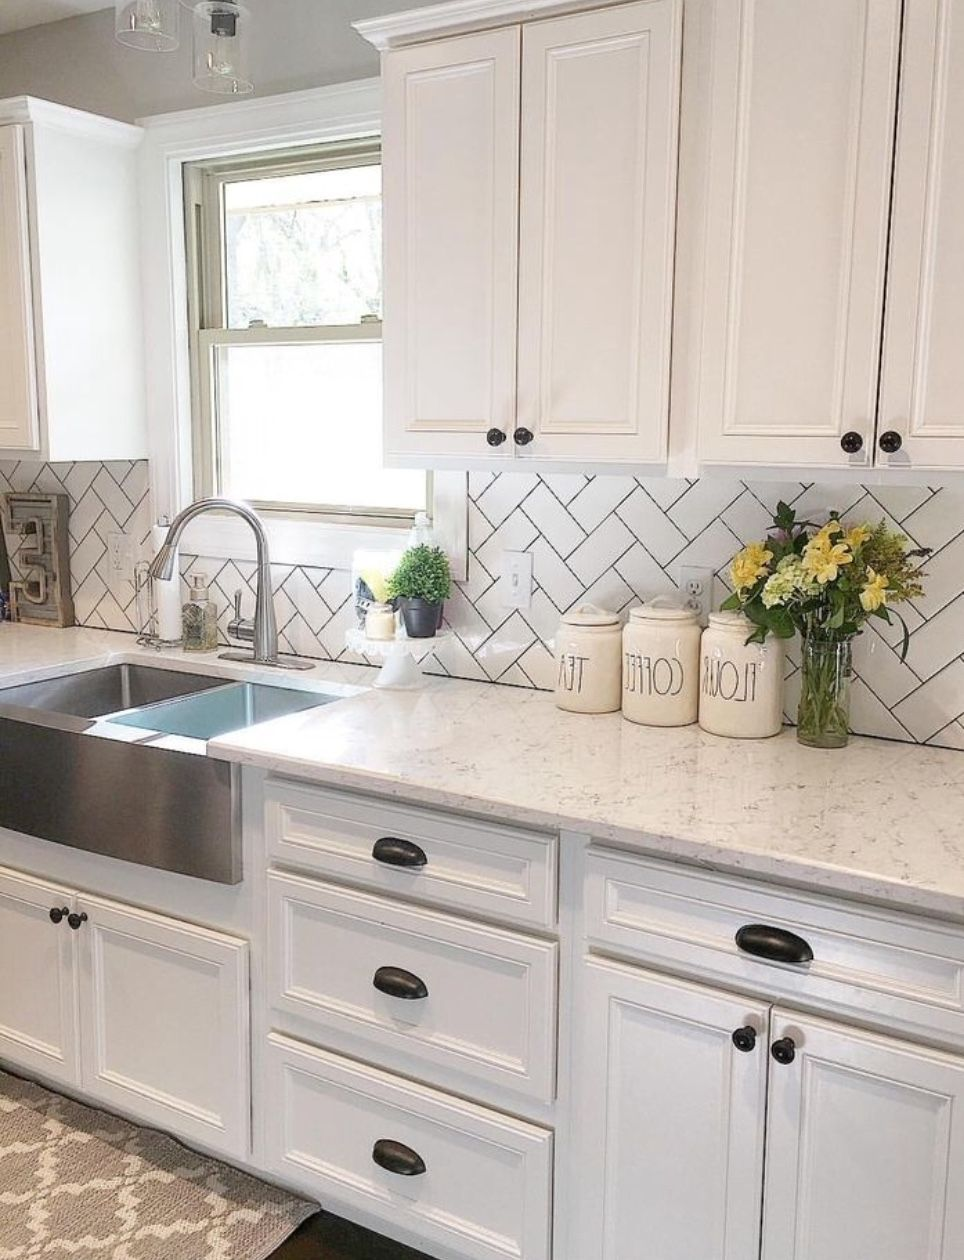 great herringbone backsplash kitchen remodel layout kitchen sink decor kitchen remodel small on farmhouse kitchen backsplash id=99196